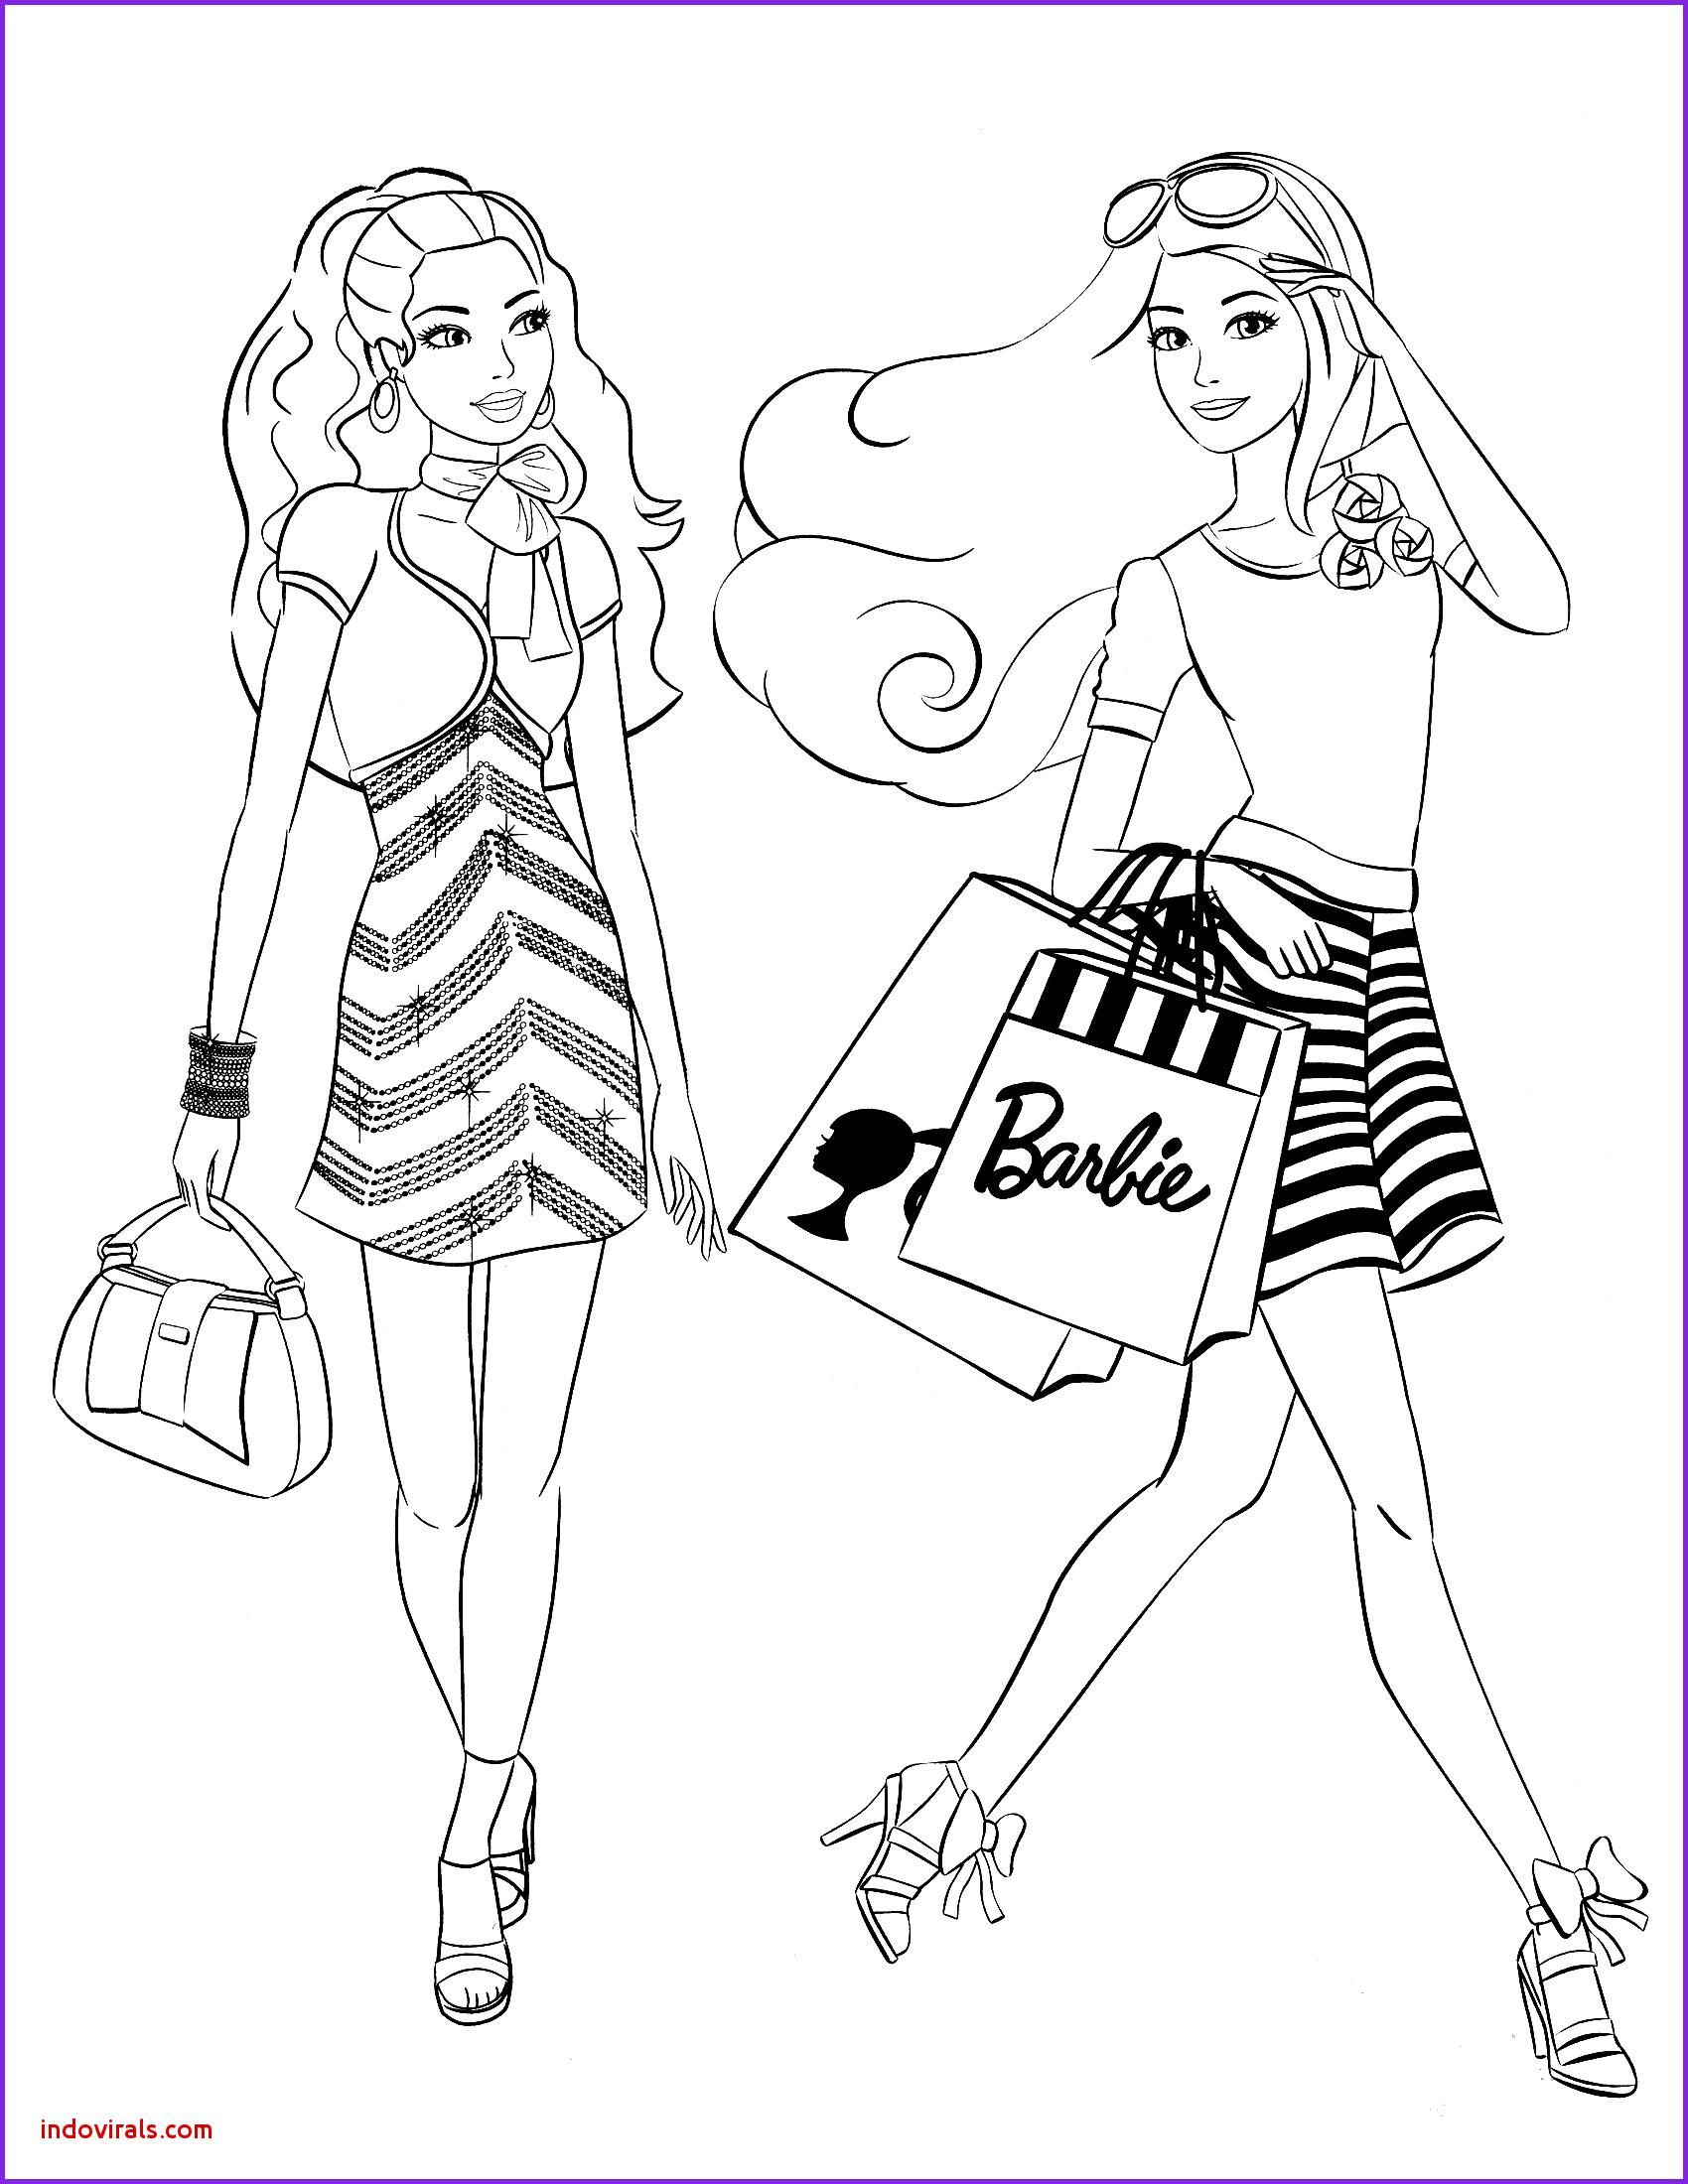 Barbie Dreamhouse Adventures Coloring Pages In 2020 Barbie Coloring Pages Princess Coloring Pages Mermaid Coloring Pages